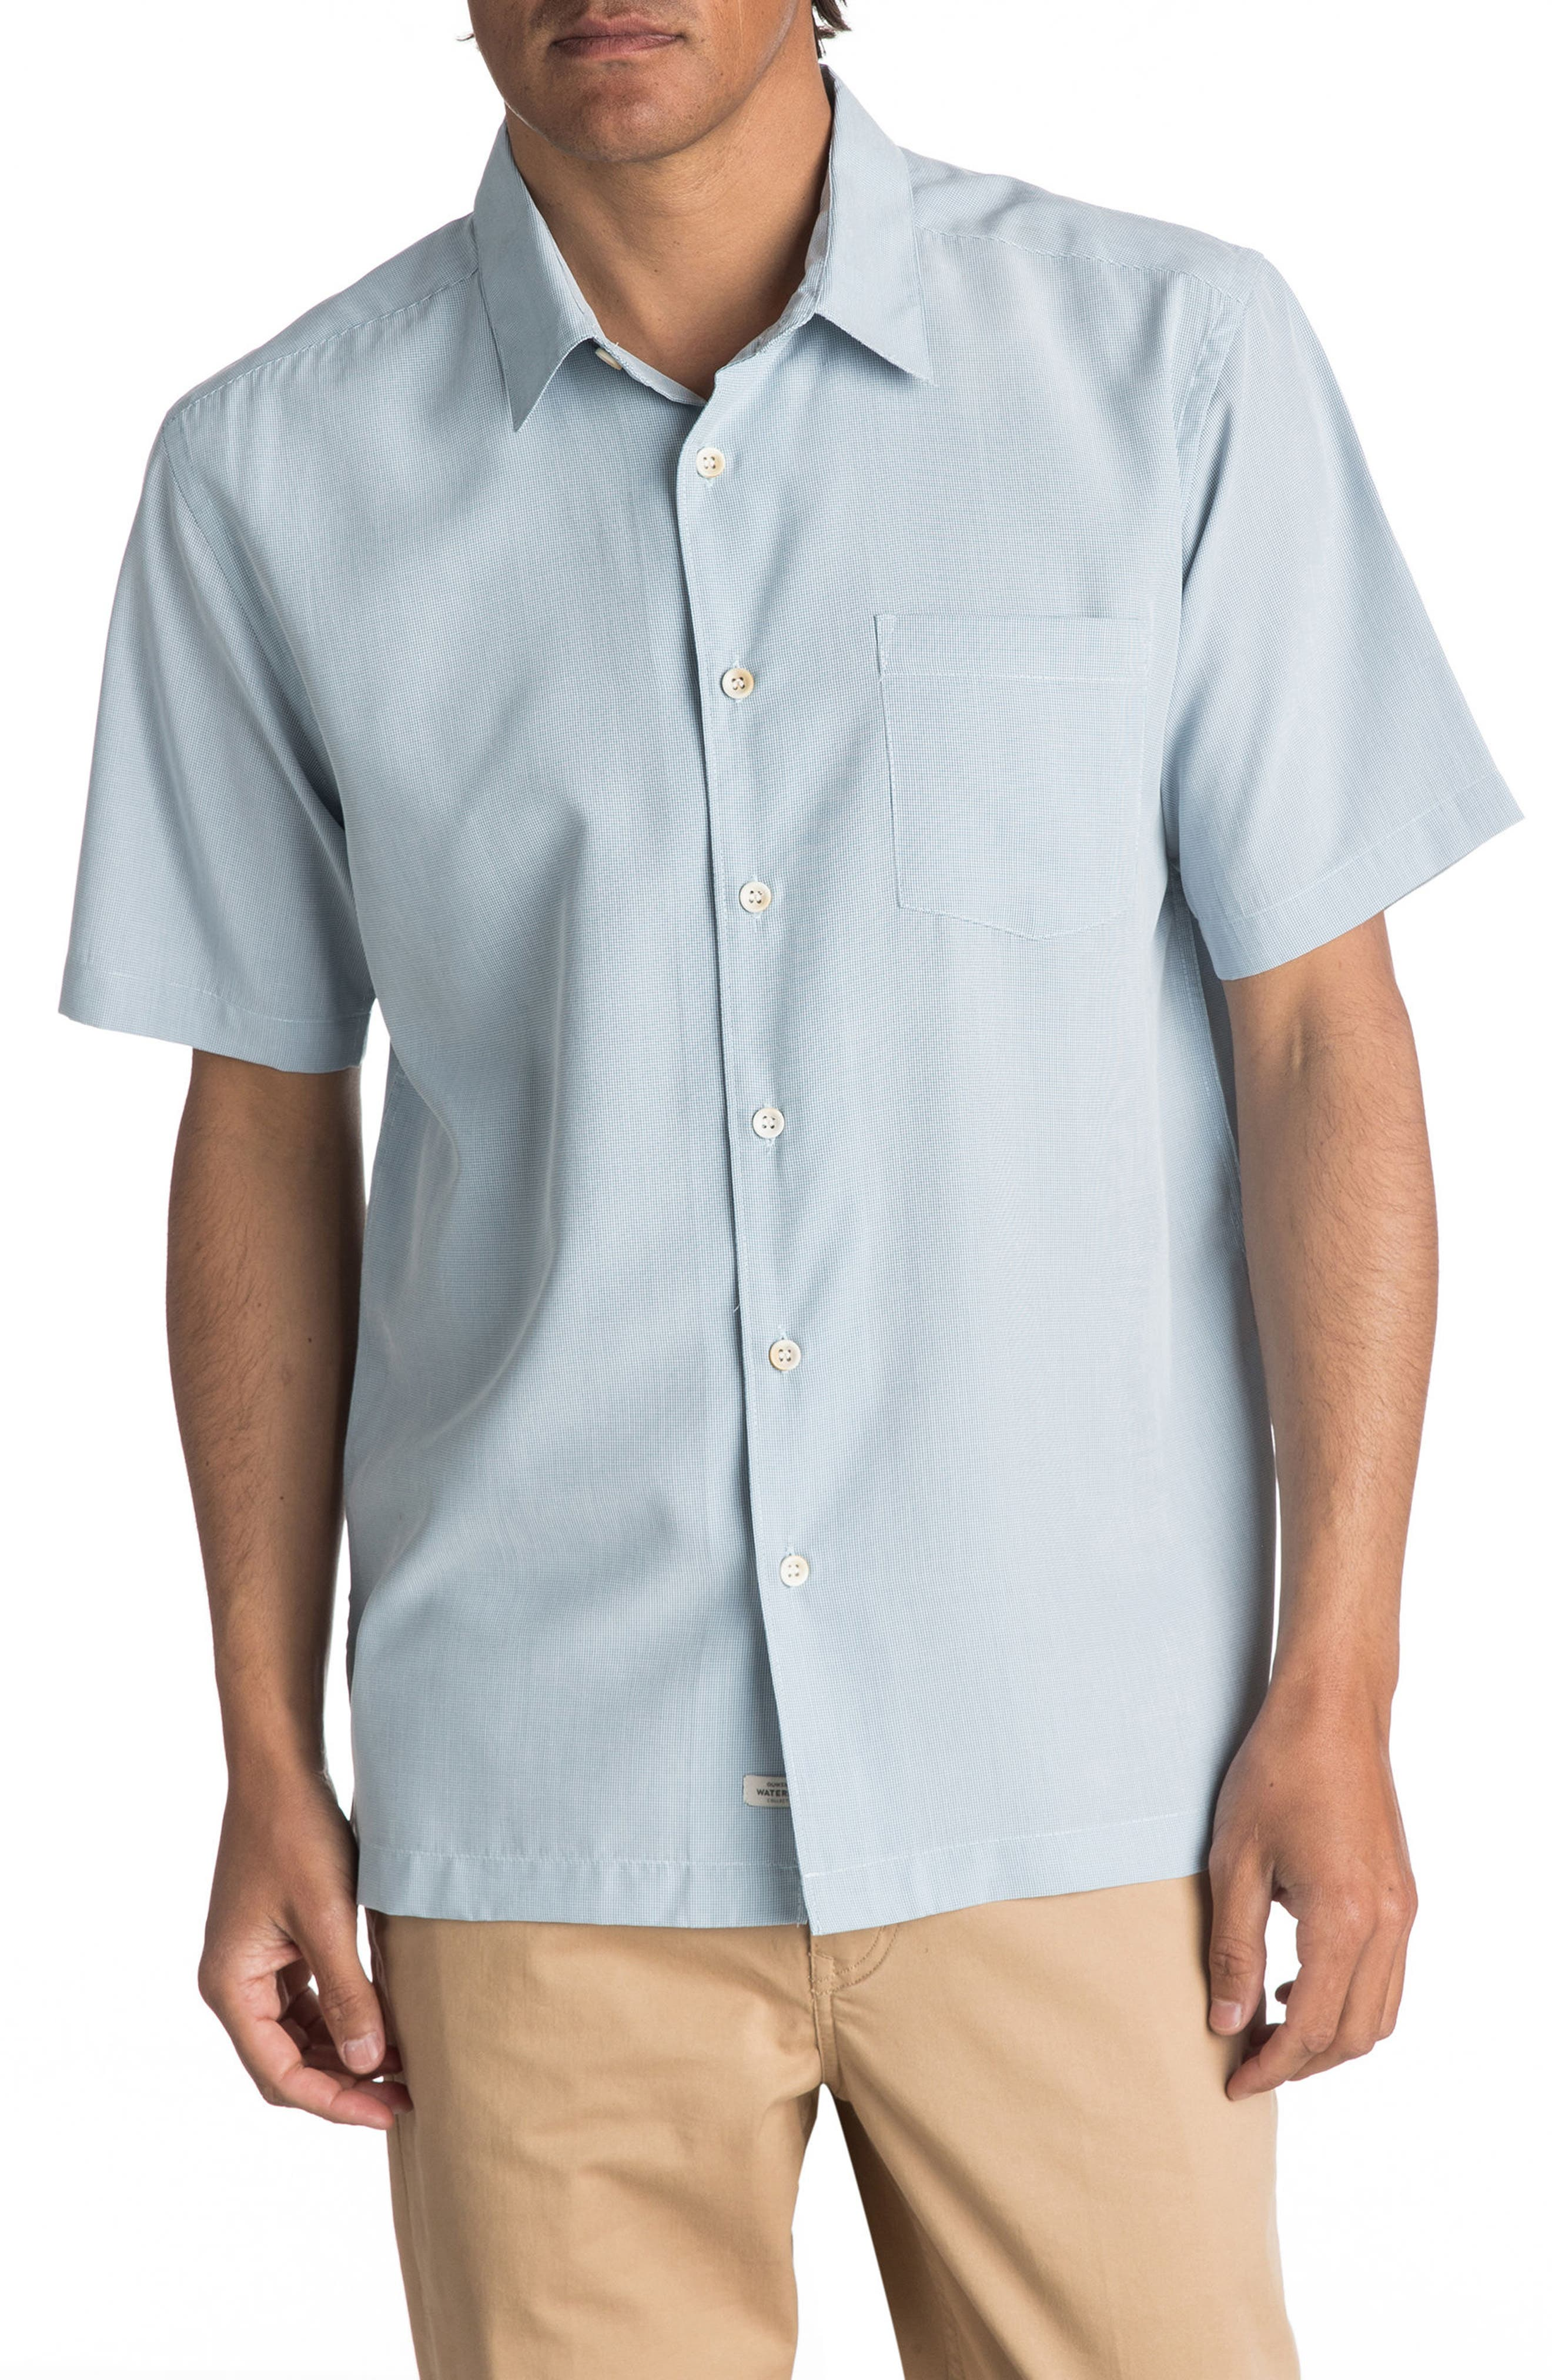 Main Image - Quiksilver Waterman Collection 'Cane Island' Regular Fit Short Sleeve Sport Shirt